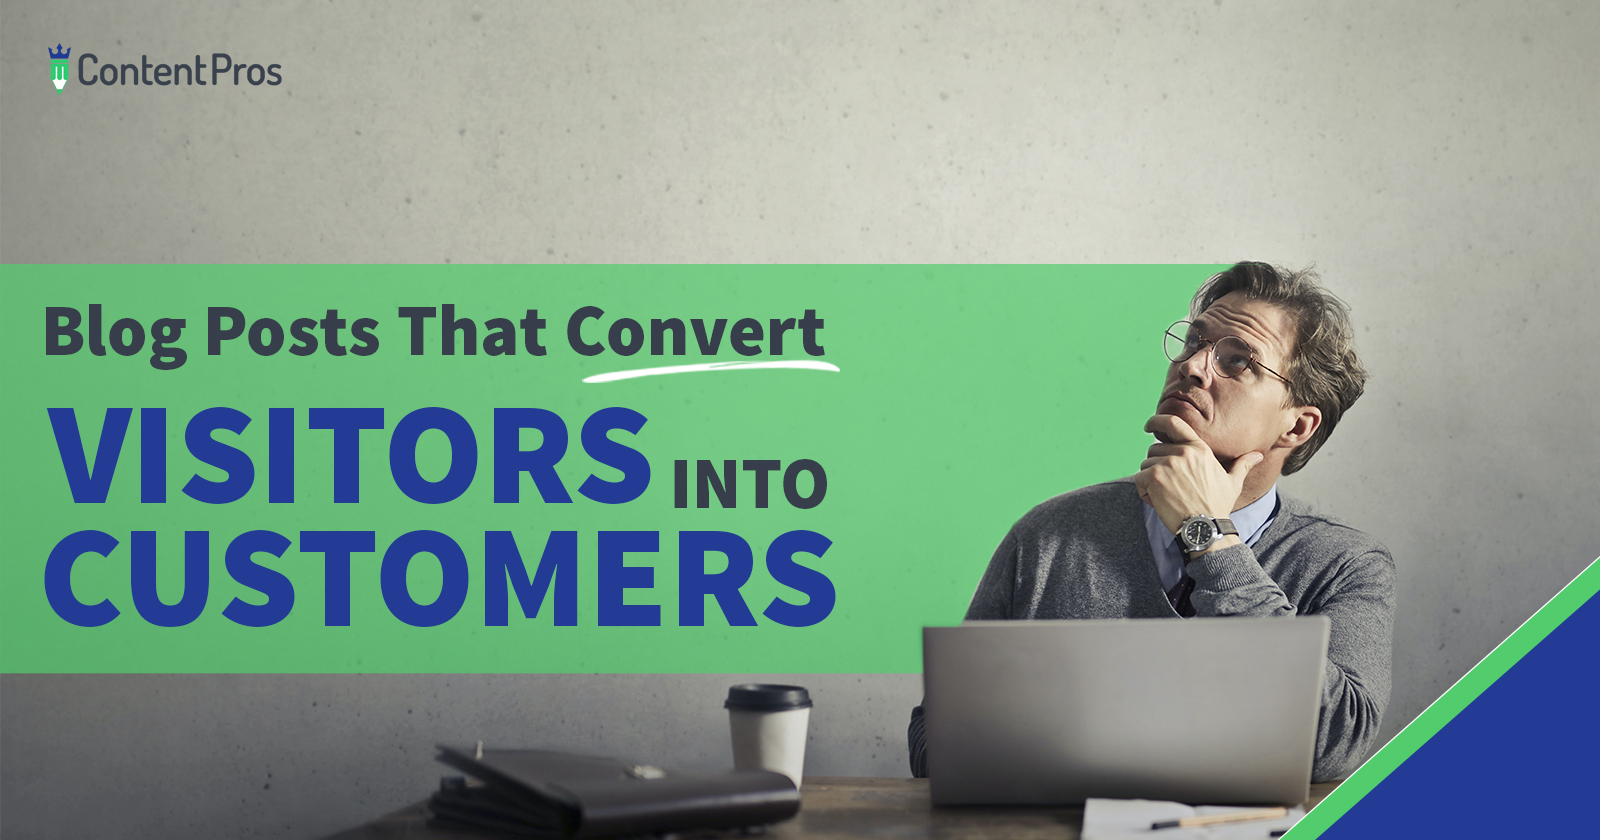 Blog posts that convert visitors into customers